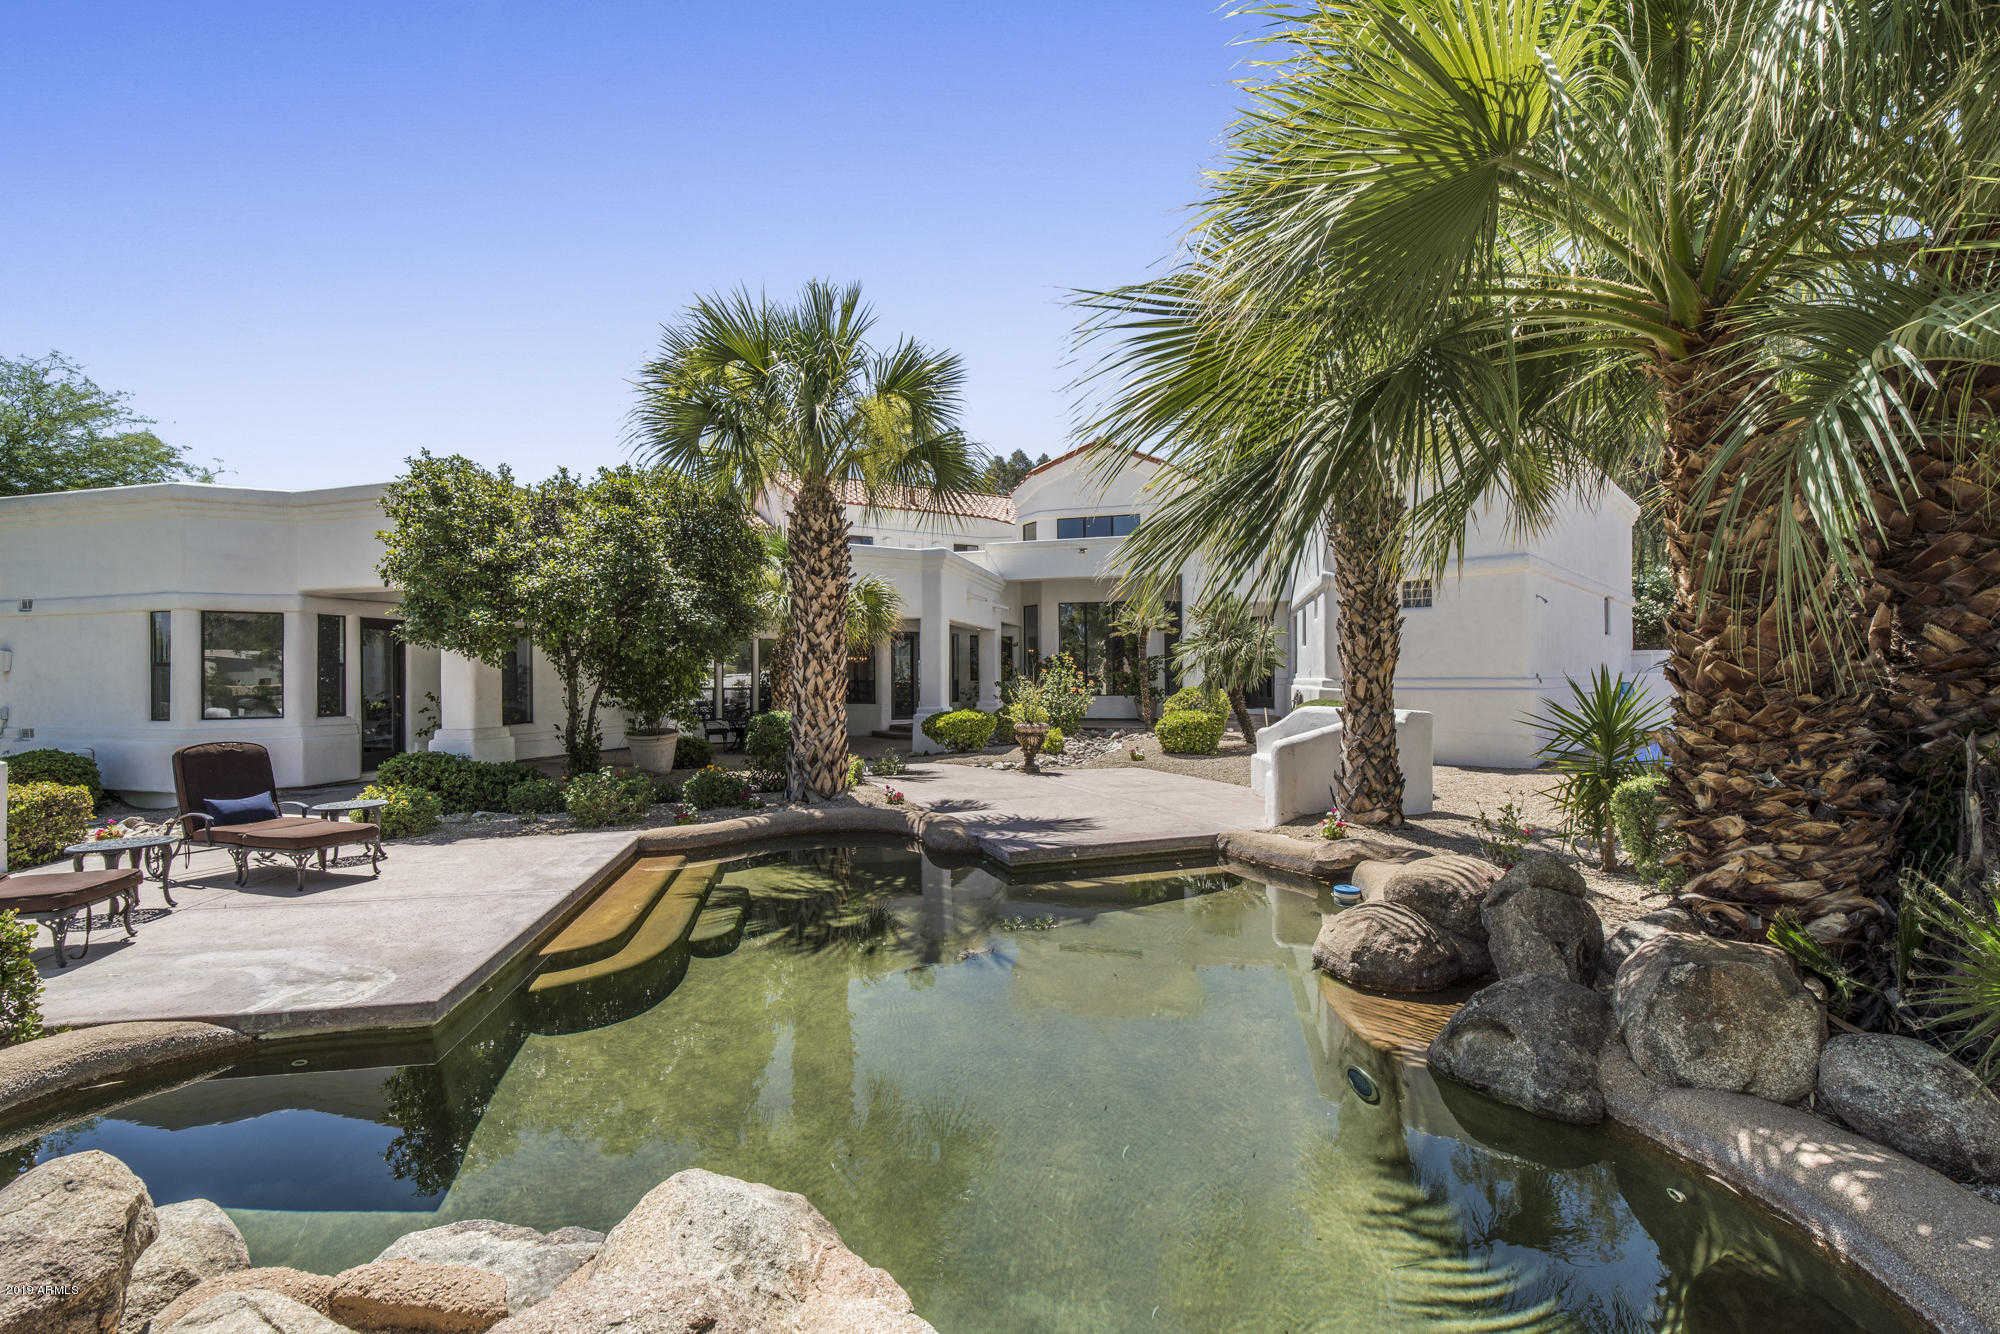 $1,945,000 - 5Br/5Ba - Home for Sale in George Portnoff Estates Lot 18a & 18b Lt 18a 18b, Paradise Valley